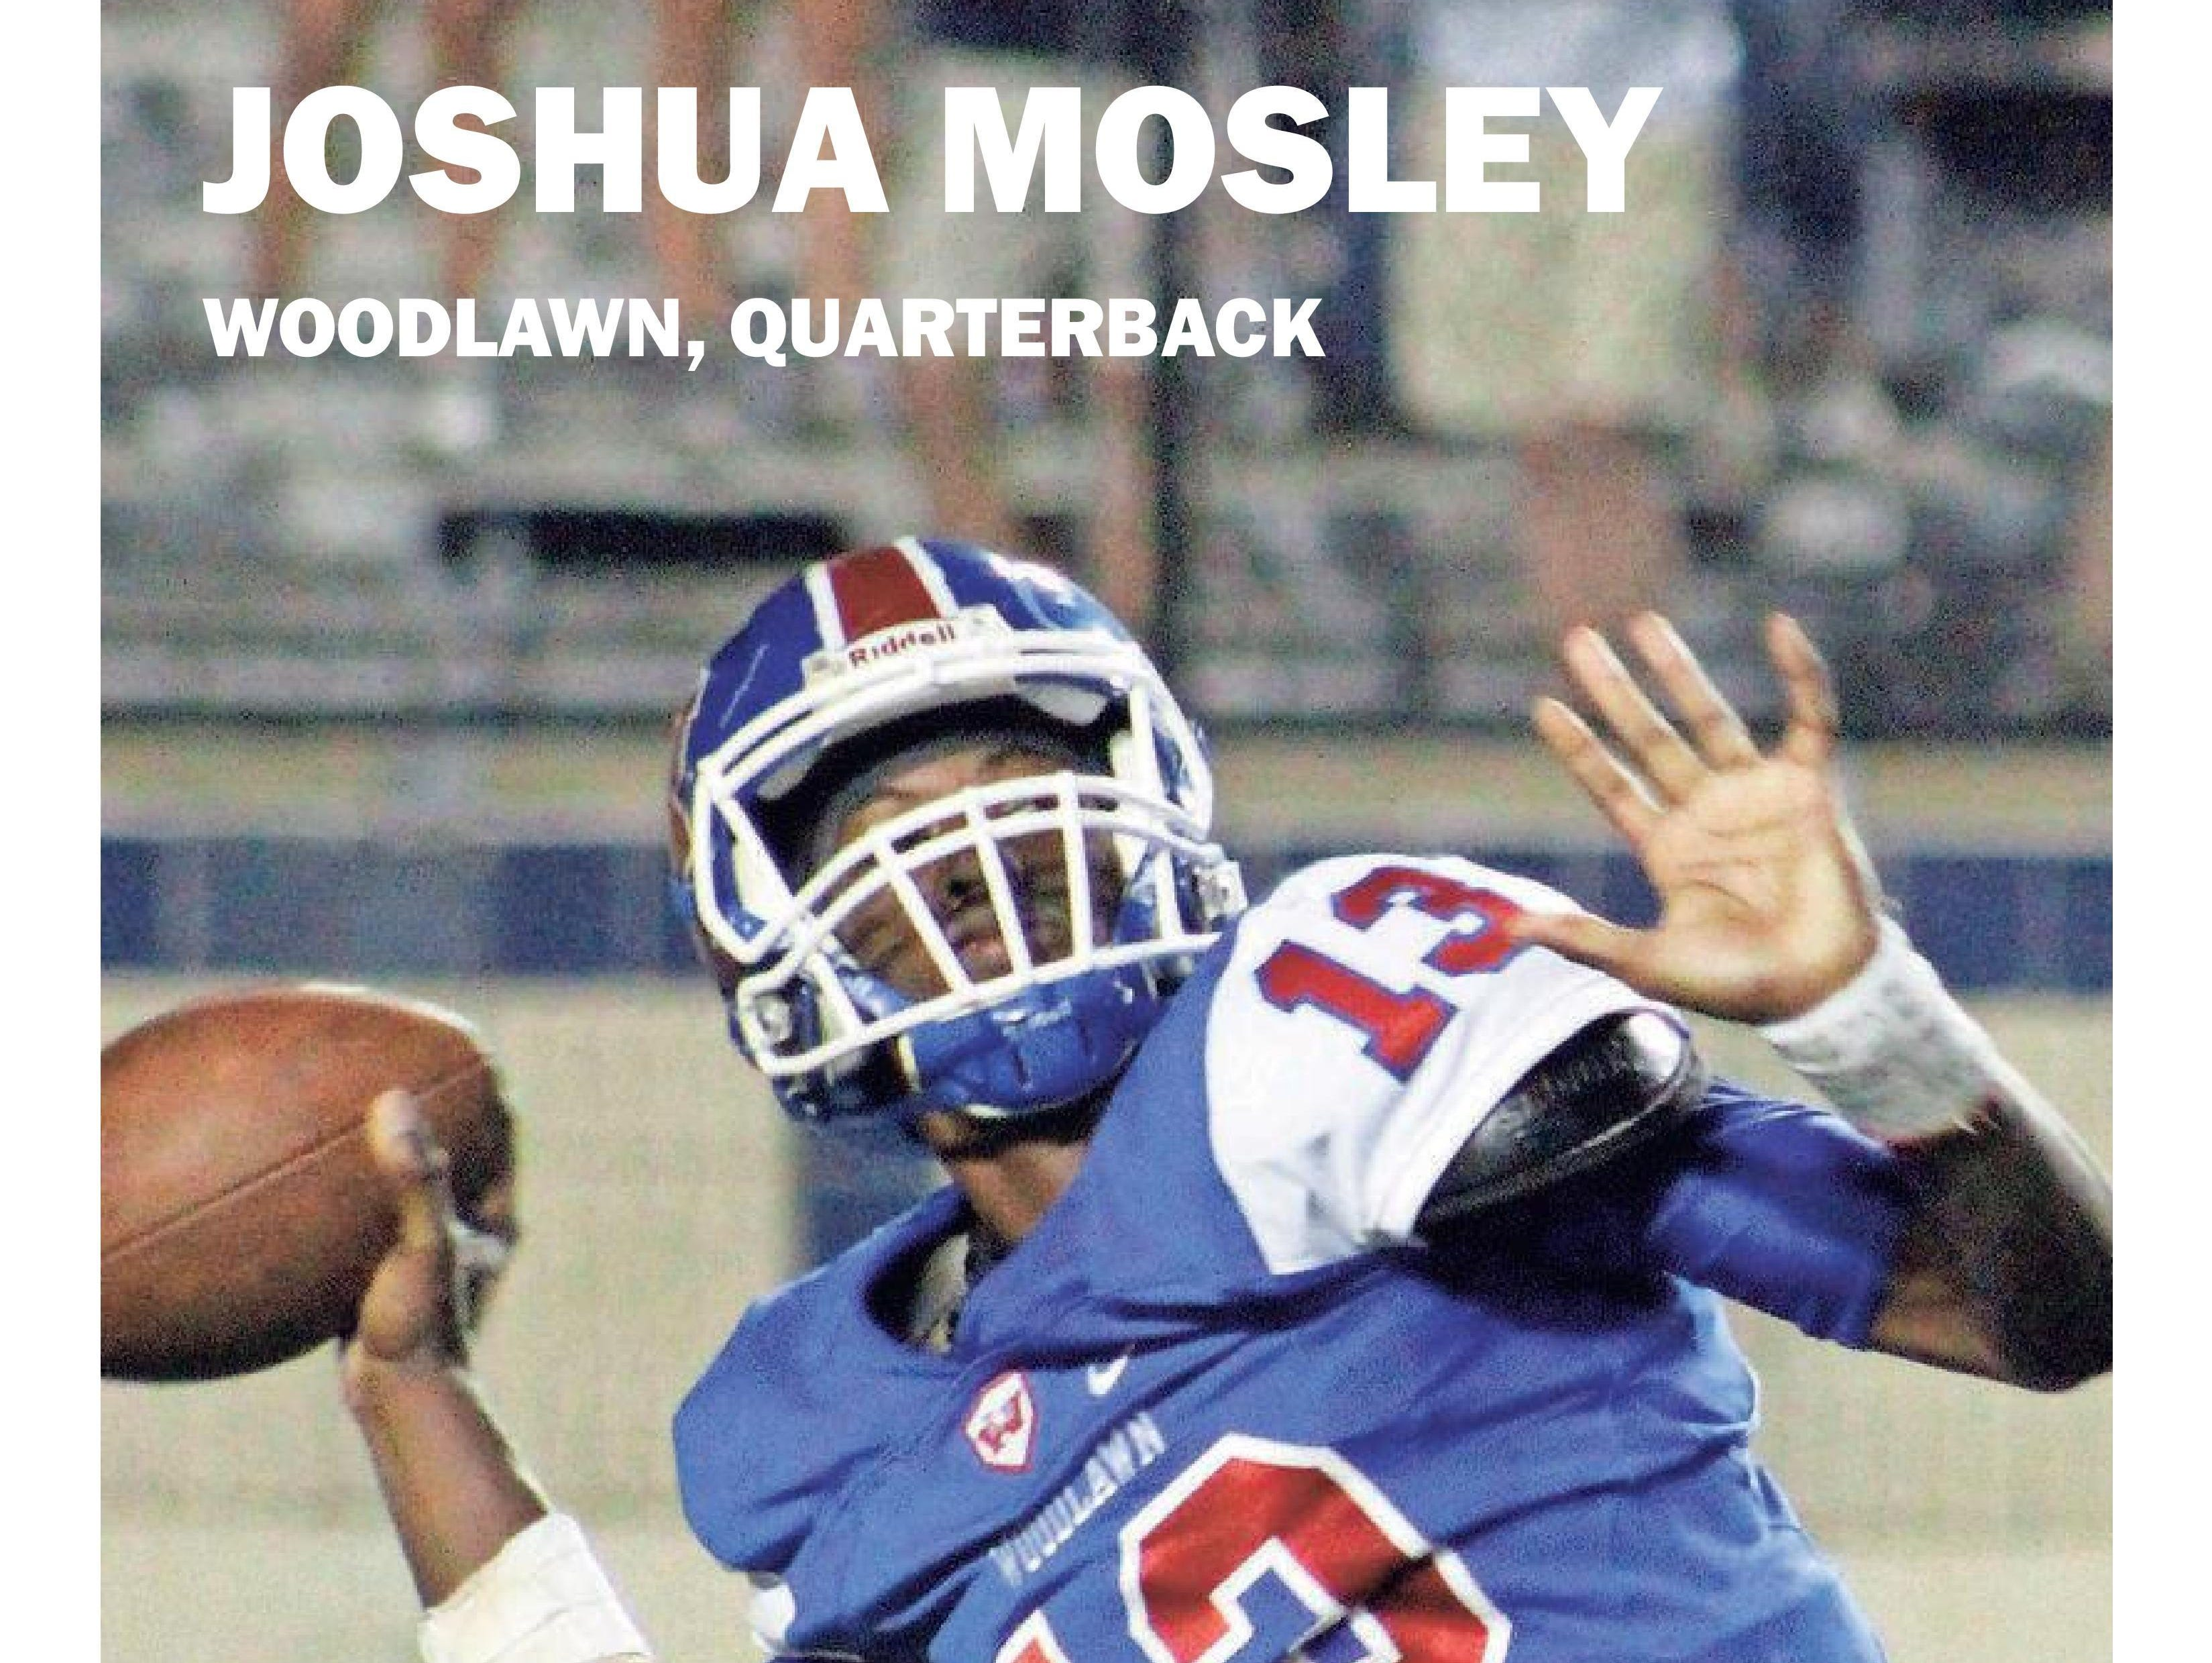 Joshua Mosley collected Week 6 Player of the Week honors.